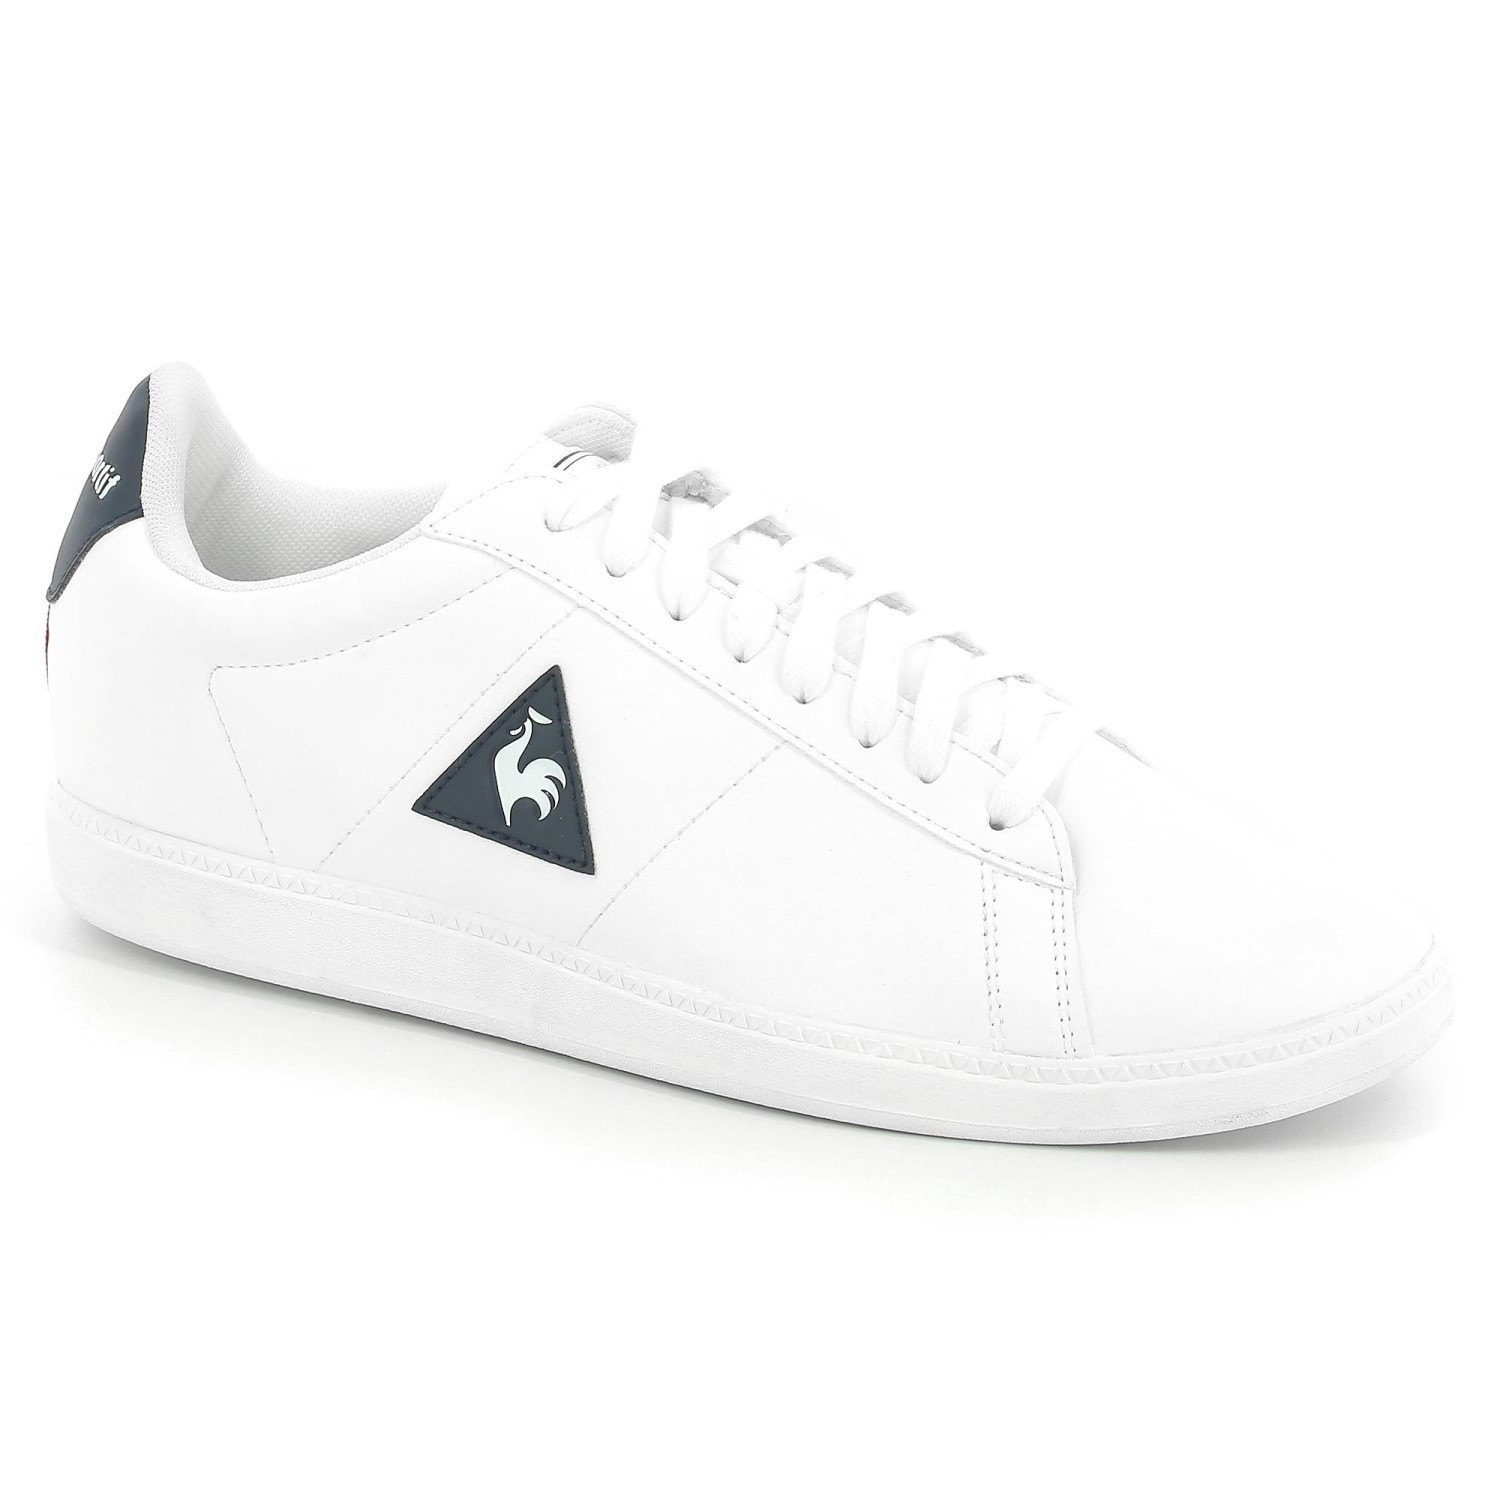 361dc6ba1f Le Coq Sportif Courtset S Lea - Mens Casual Shoes - Optical White/Dress Blue